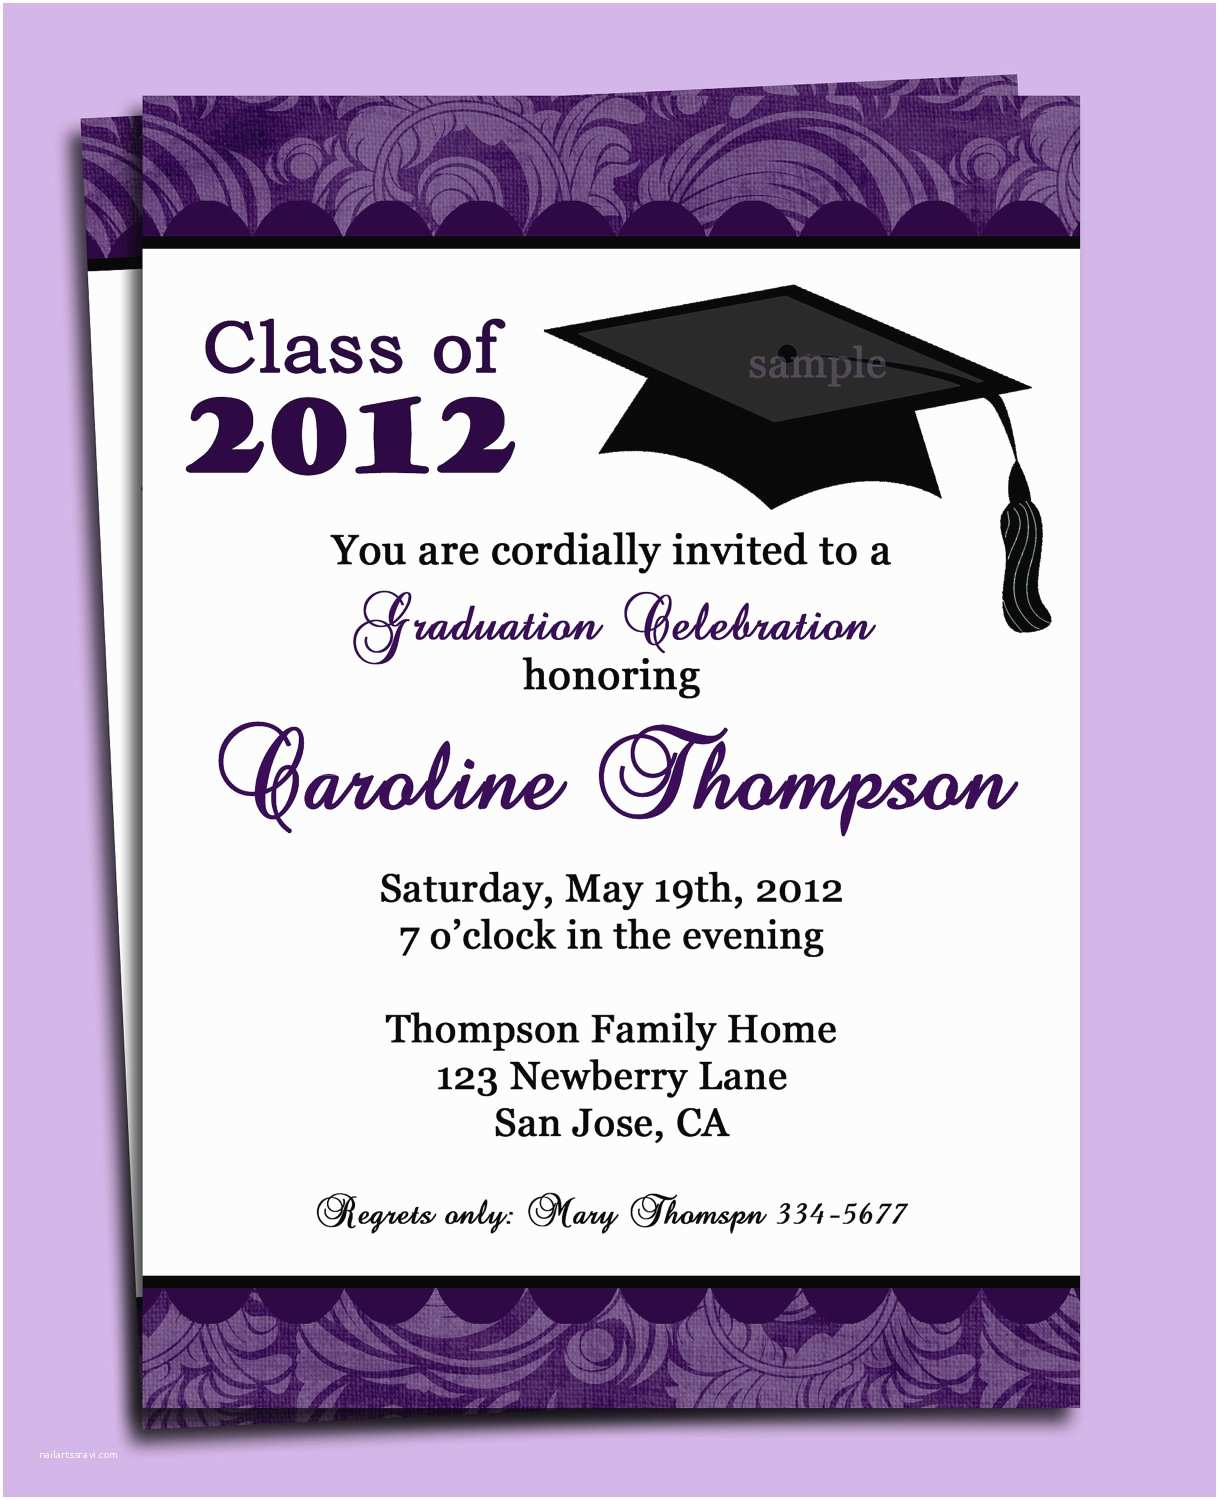 Graduation Party Invitations Graduation Party Invitation Wording